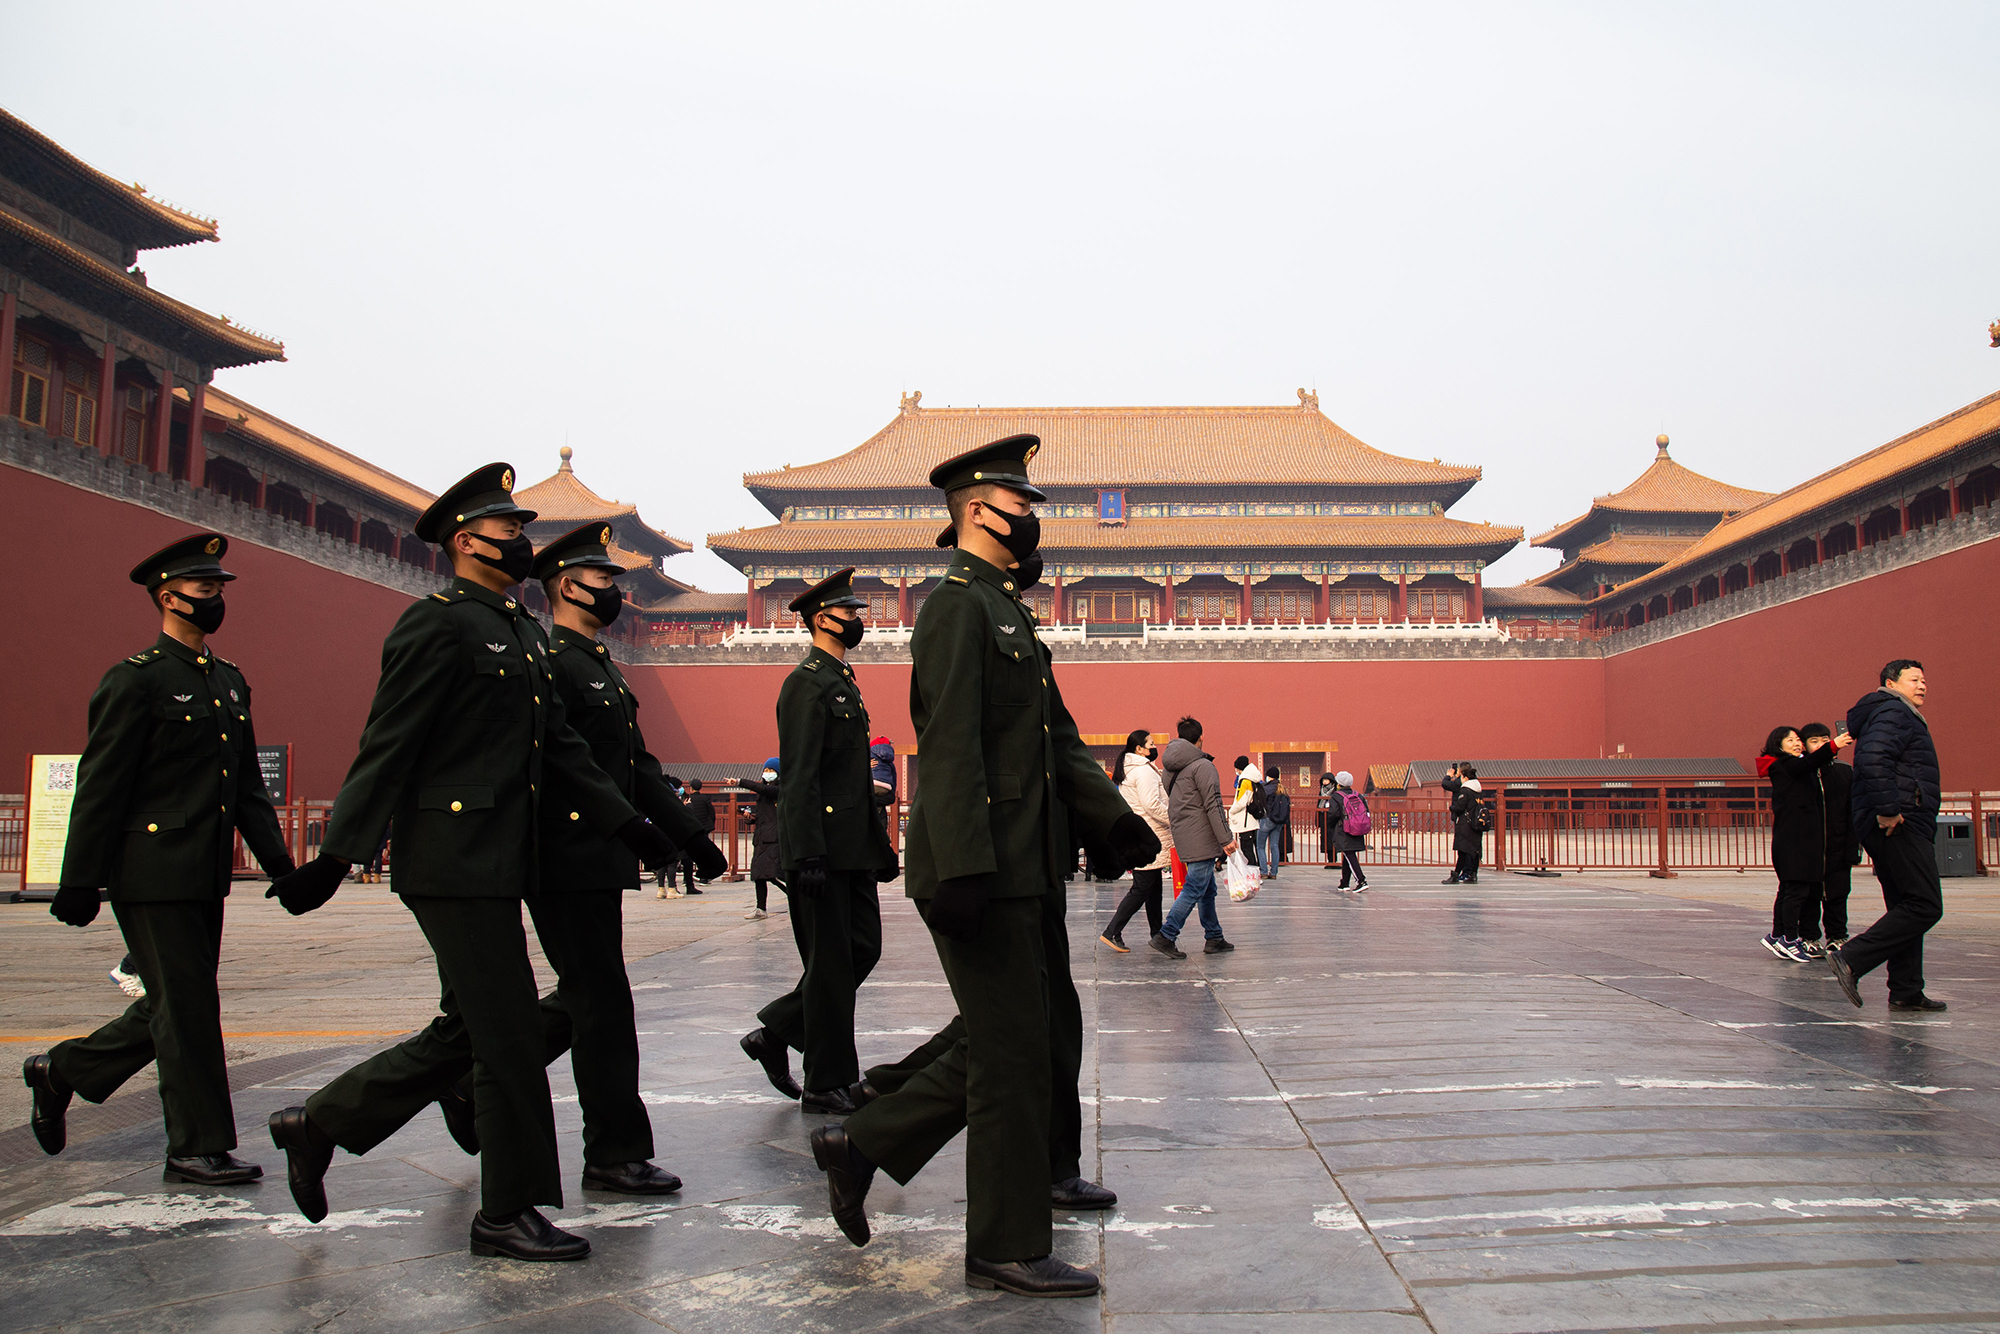 Chinese police officers walk in front of the gated entrance of The Palace Museum on January 26, in Beijing, China.